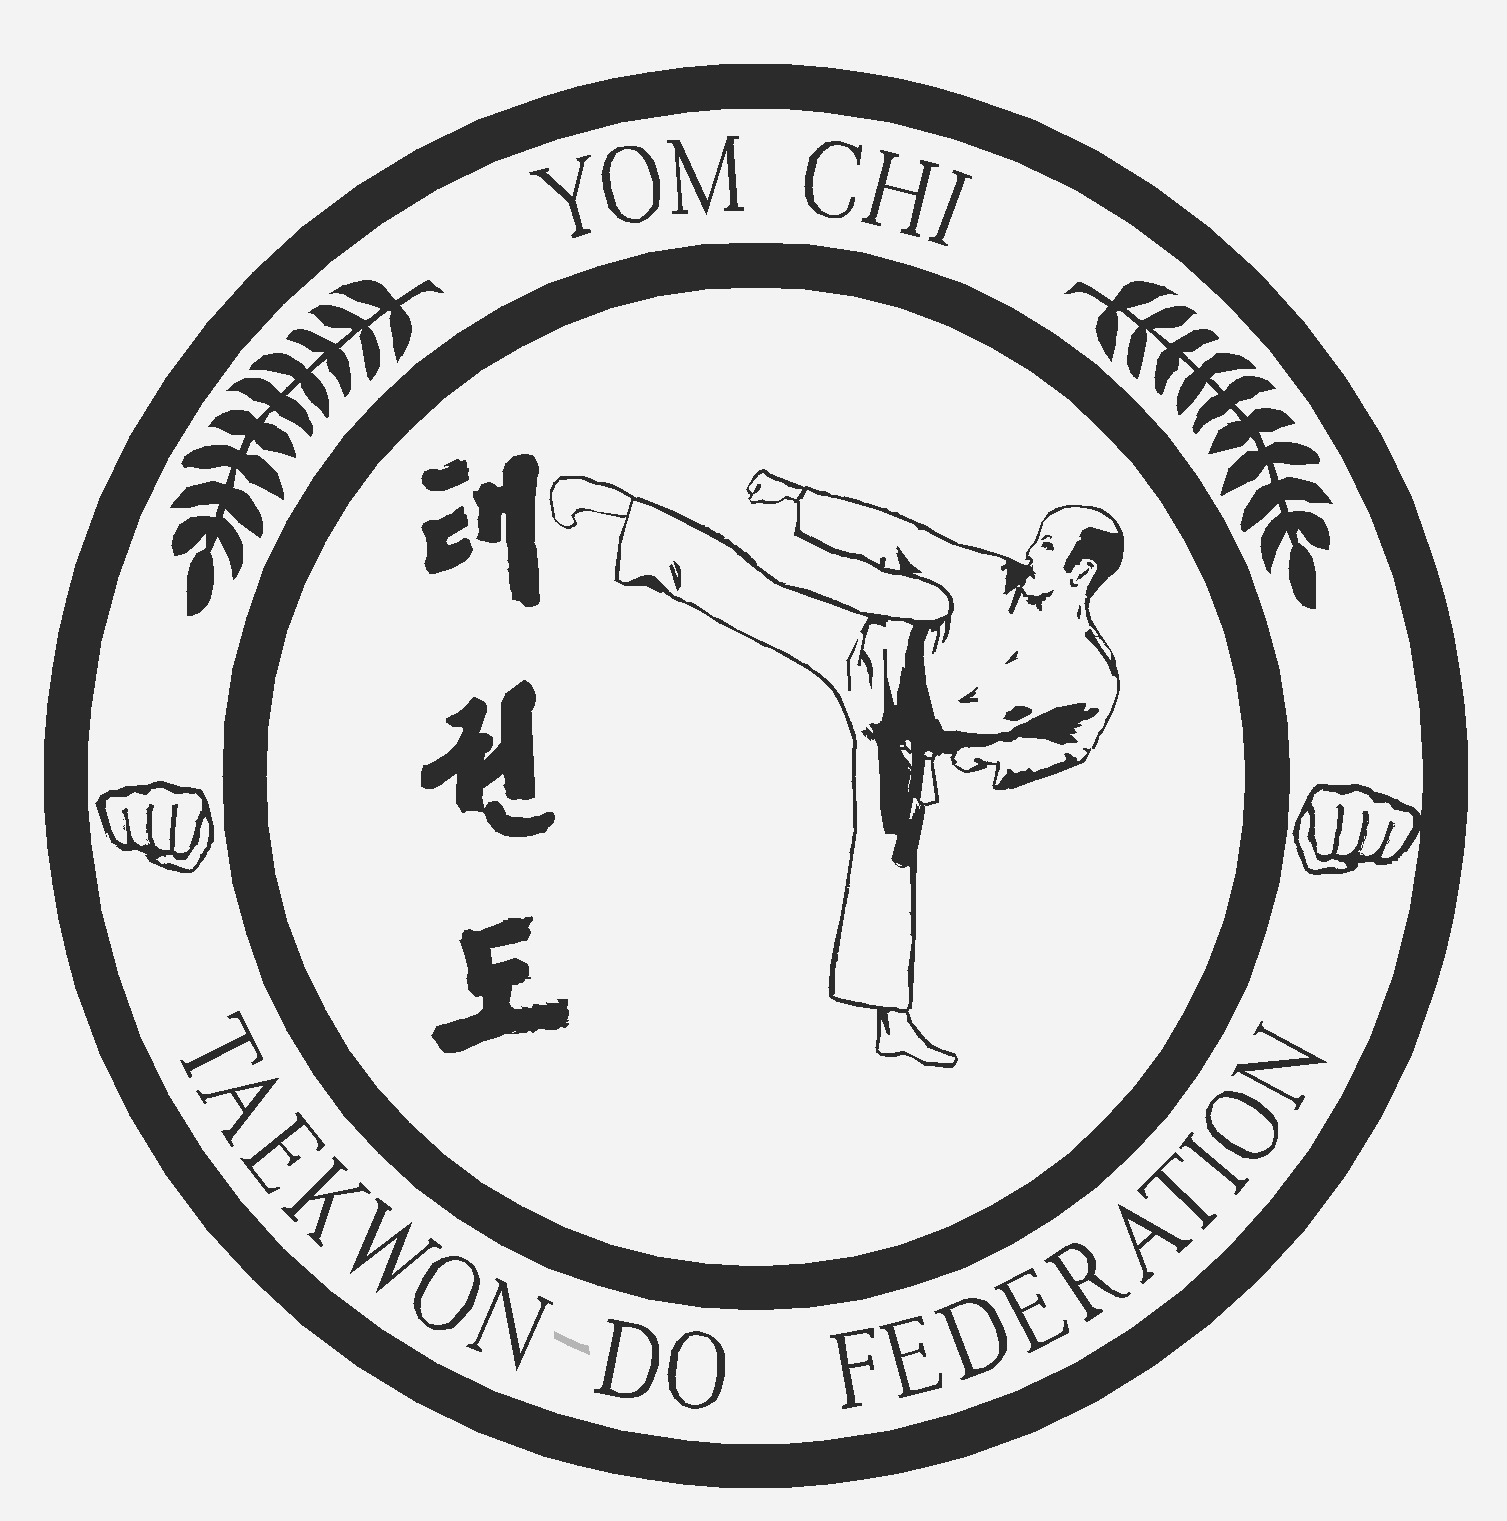 Yom Chi TaeKwon-Do  Federation Home Page